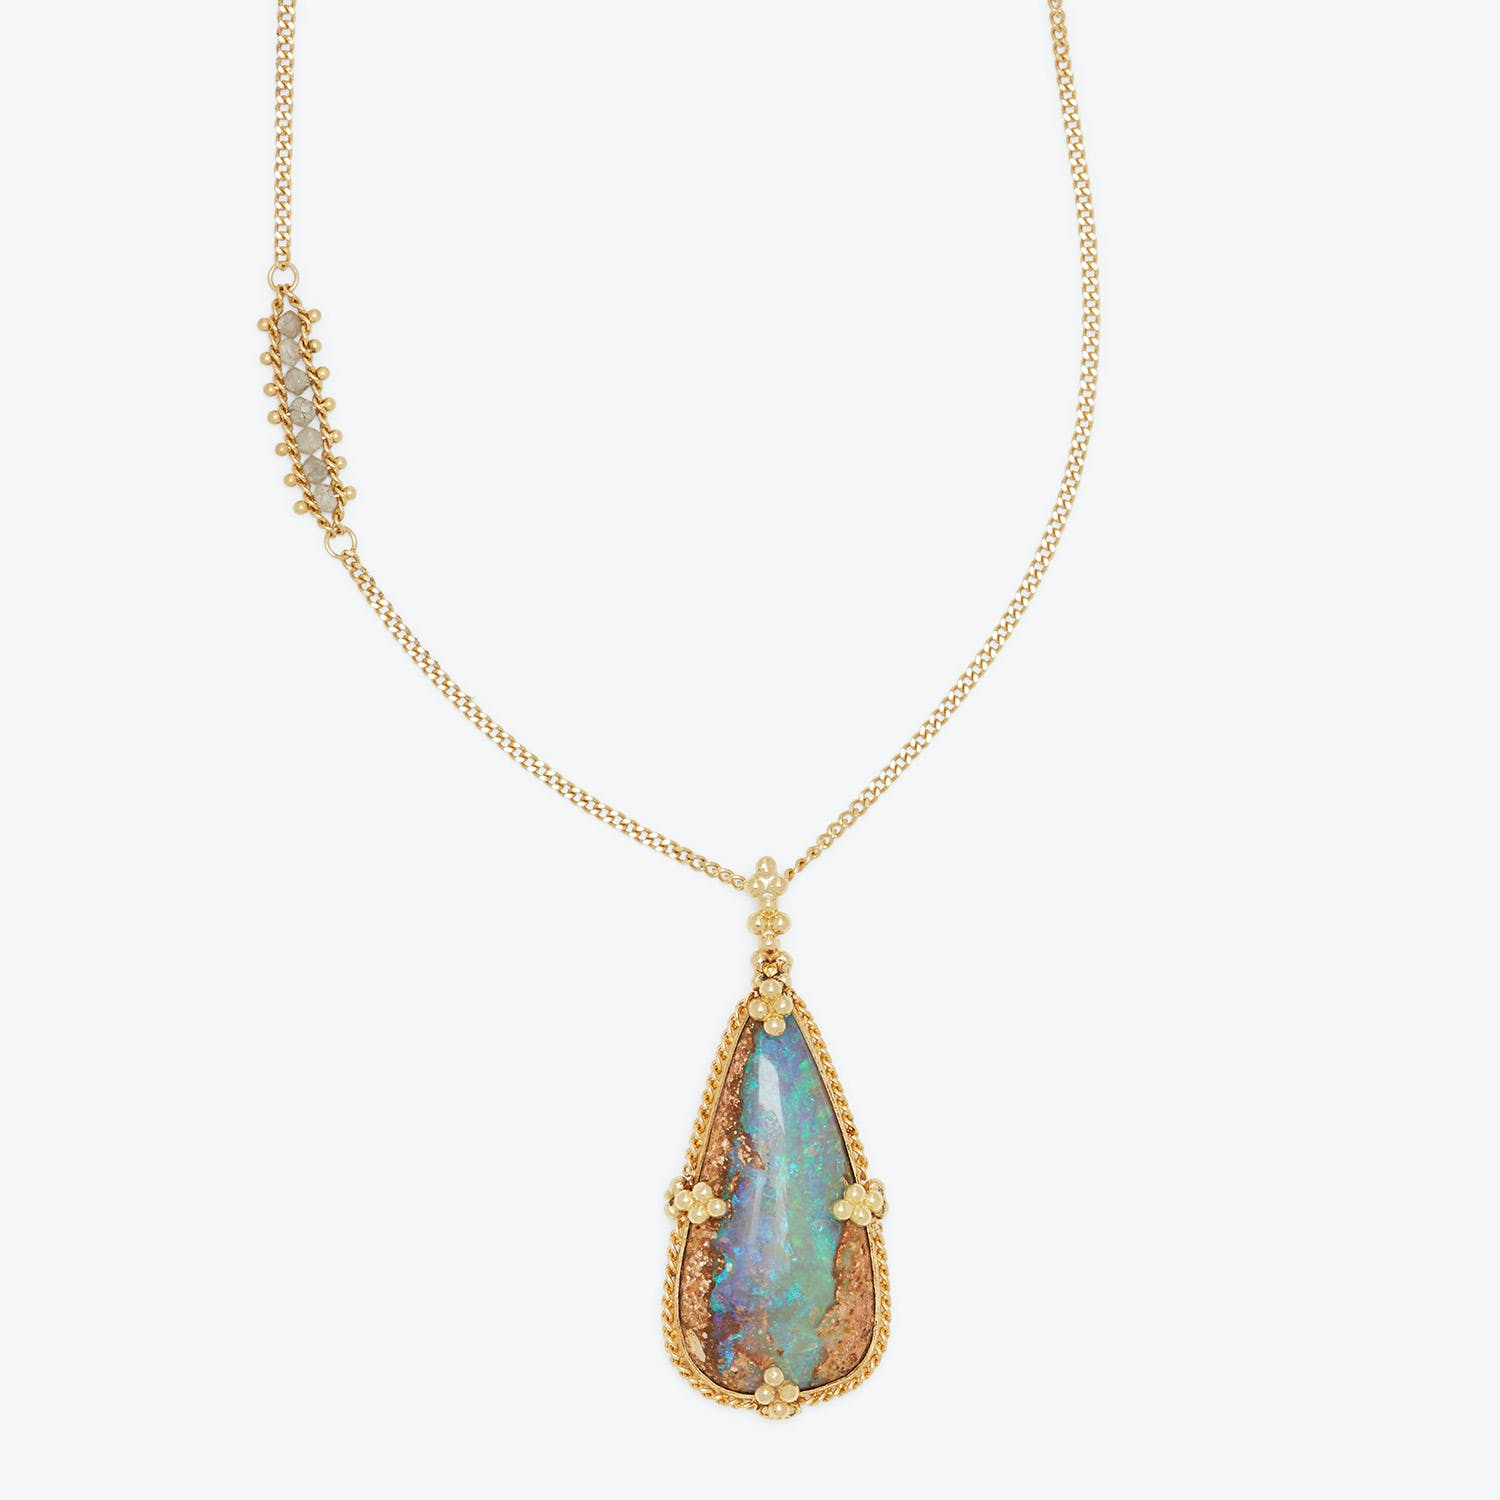 Amali One-of-a-kind Opalized Wood & Silver Diamond Necklace